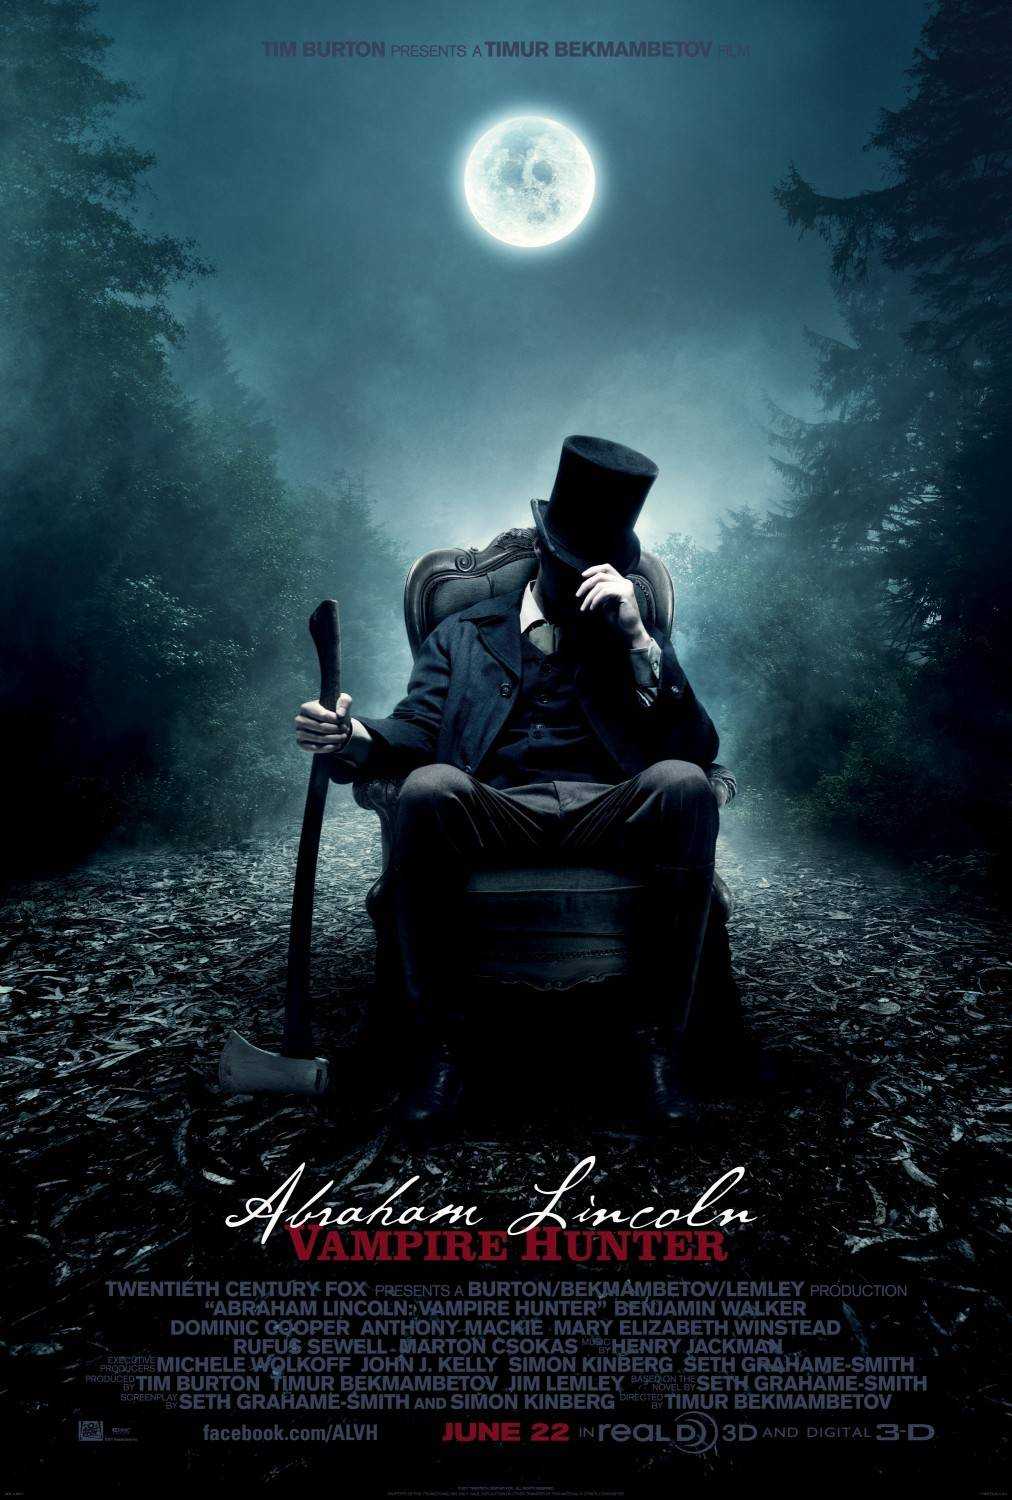 Abraham Lincoln: Vampire Hunter (film) - Wikipedia, the free encyclopedia